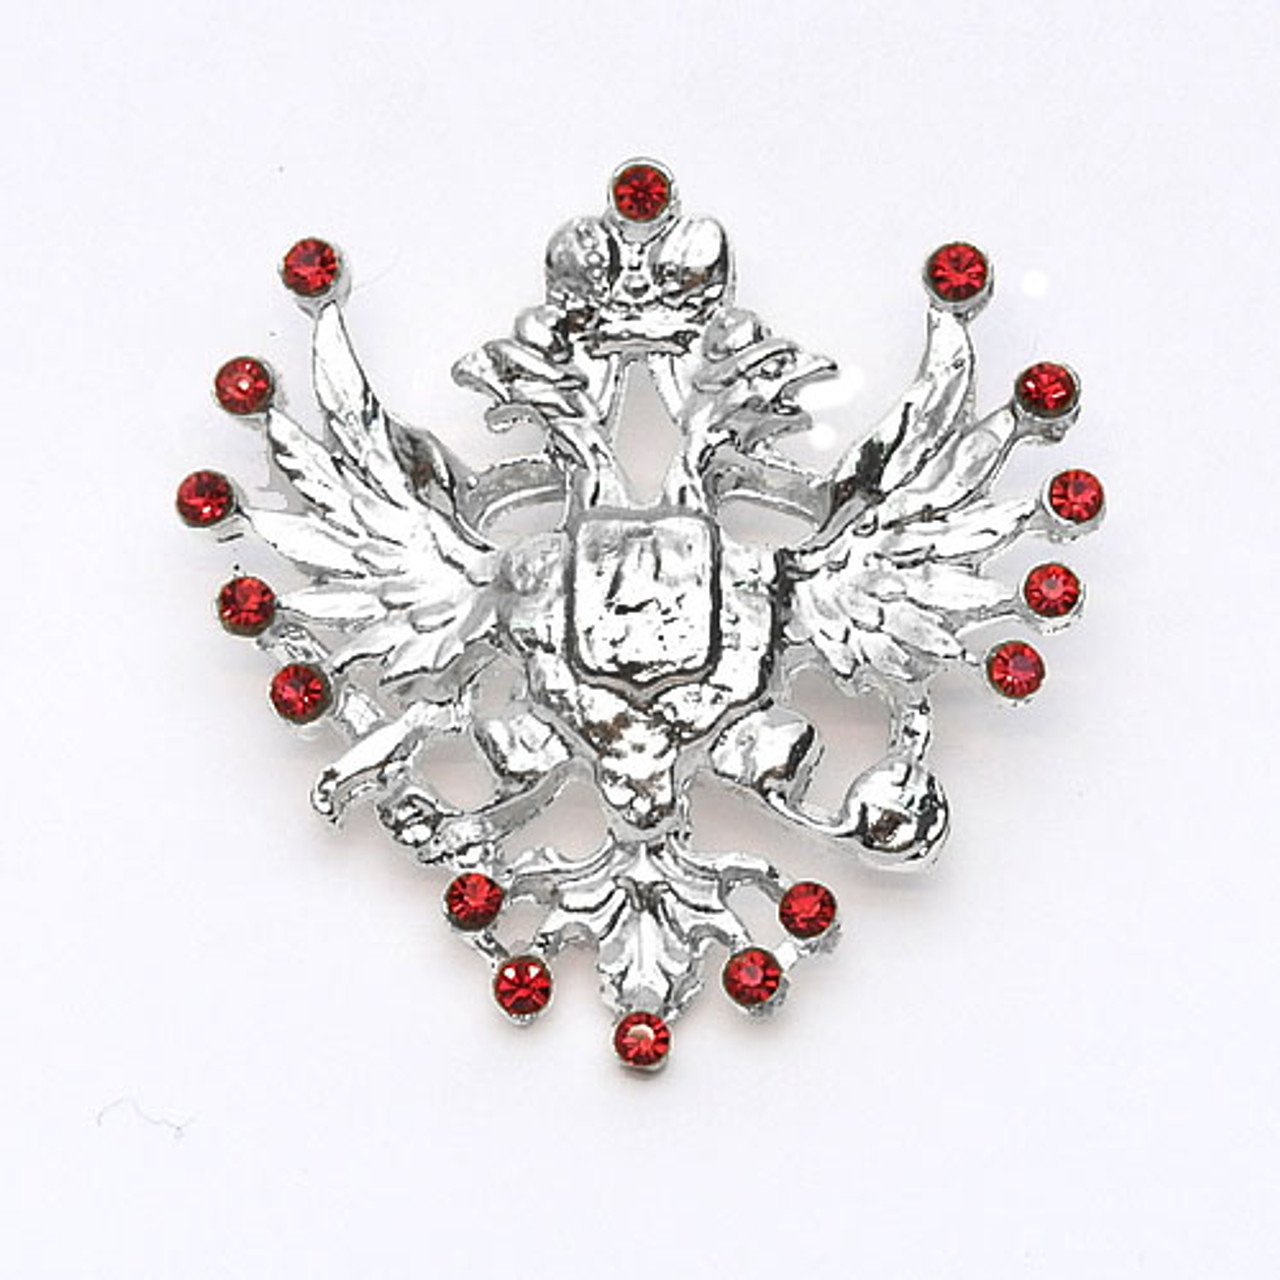 Gem Studded Double-Headed Eagle Pin with Russian Romanov Tsars Crest  RED